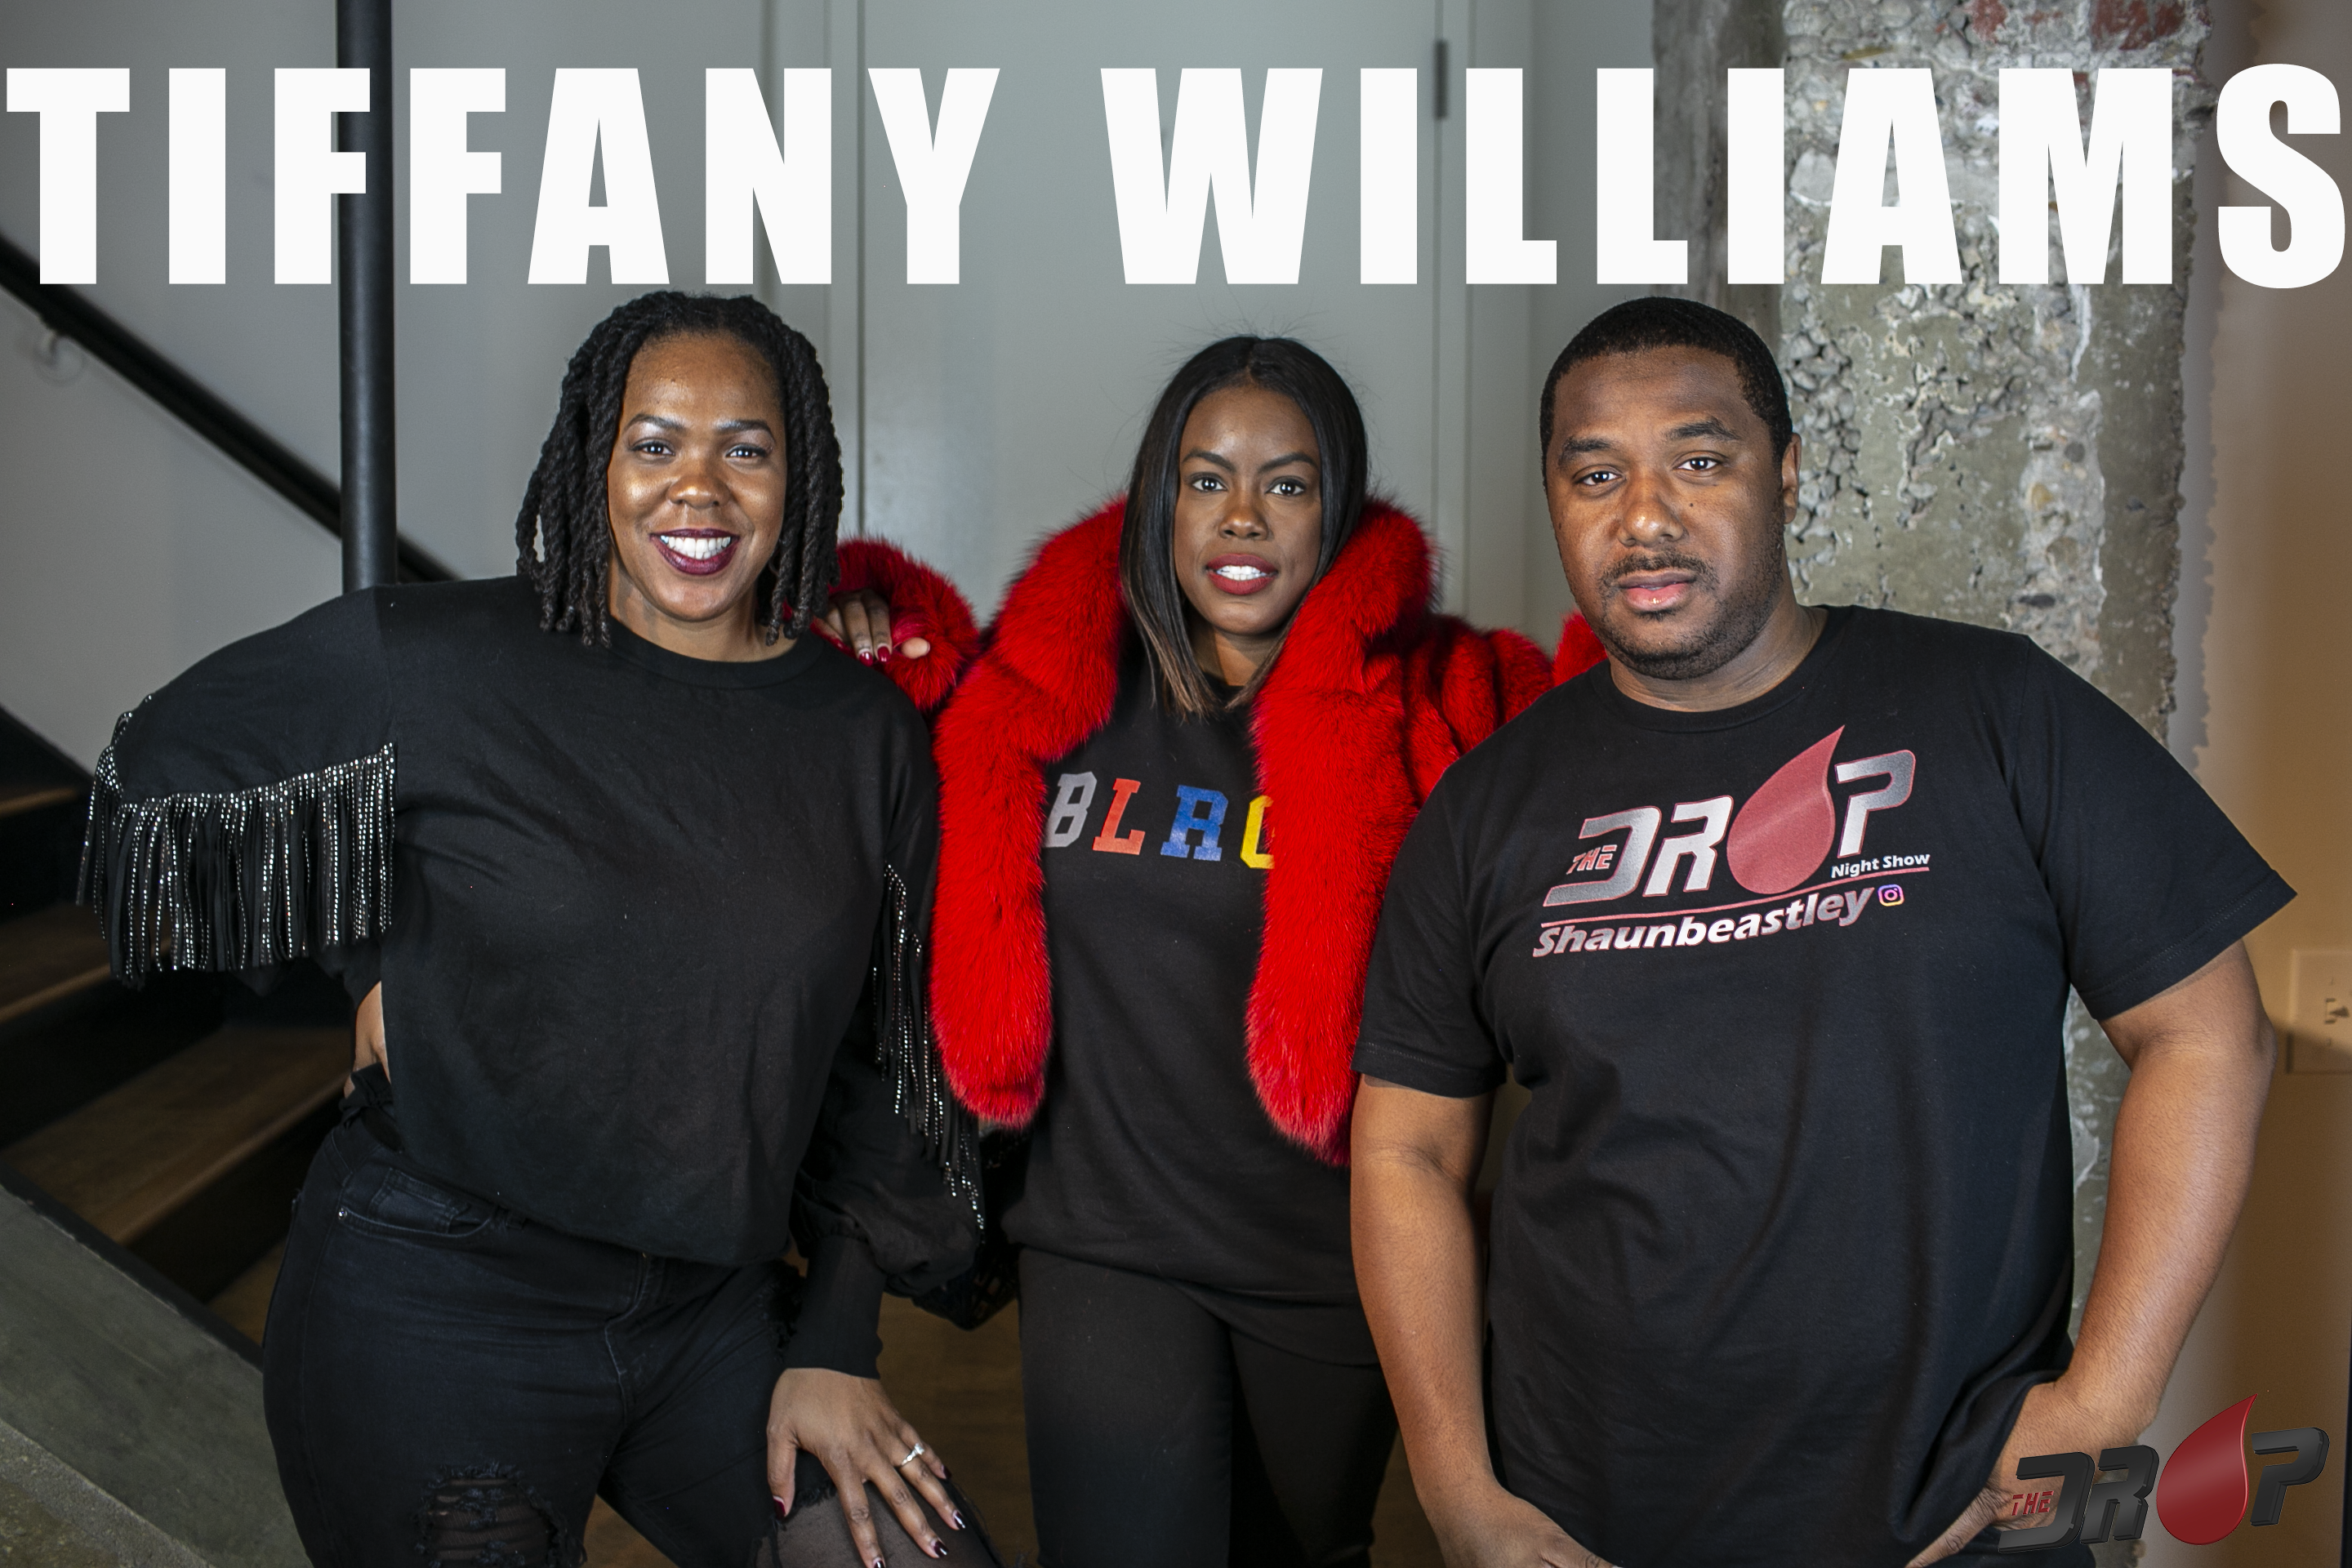 TIFFANY WILLIAMS INTERVIEW